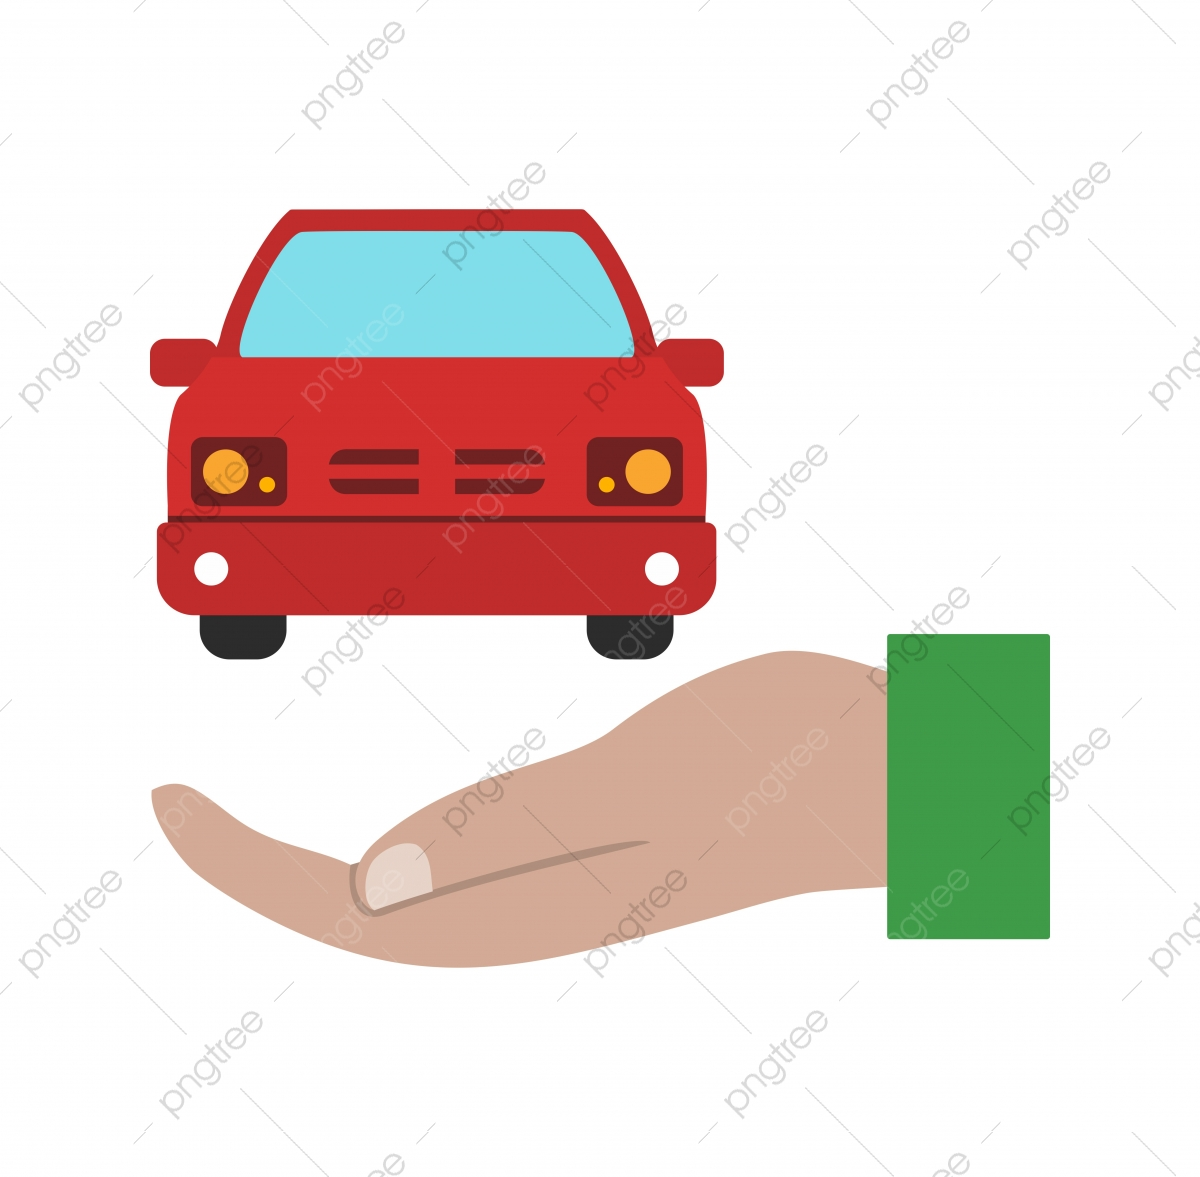 Car Insurance Flat Icon Car Icons Insurance Icons Car Insurance Icon Png And Vector With Transparent Background For Free Download